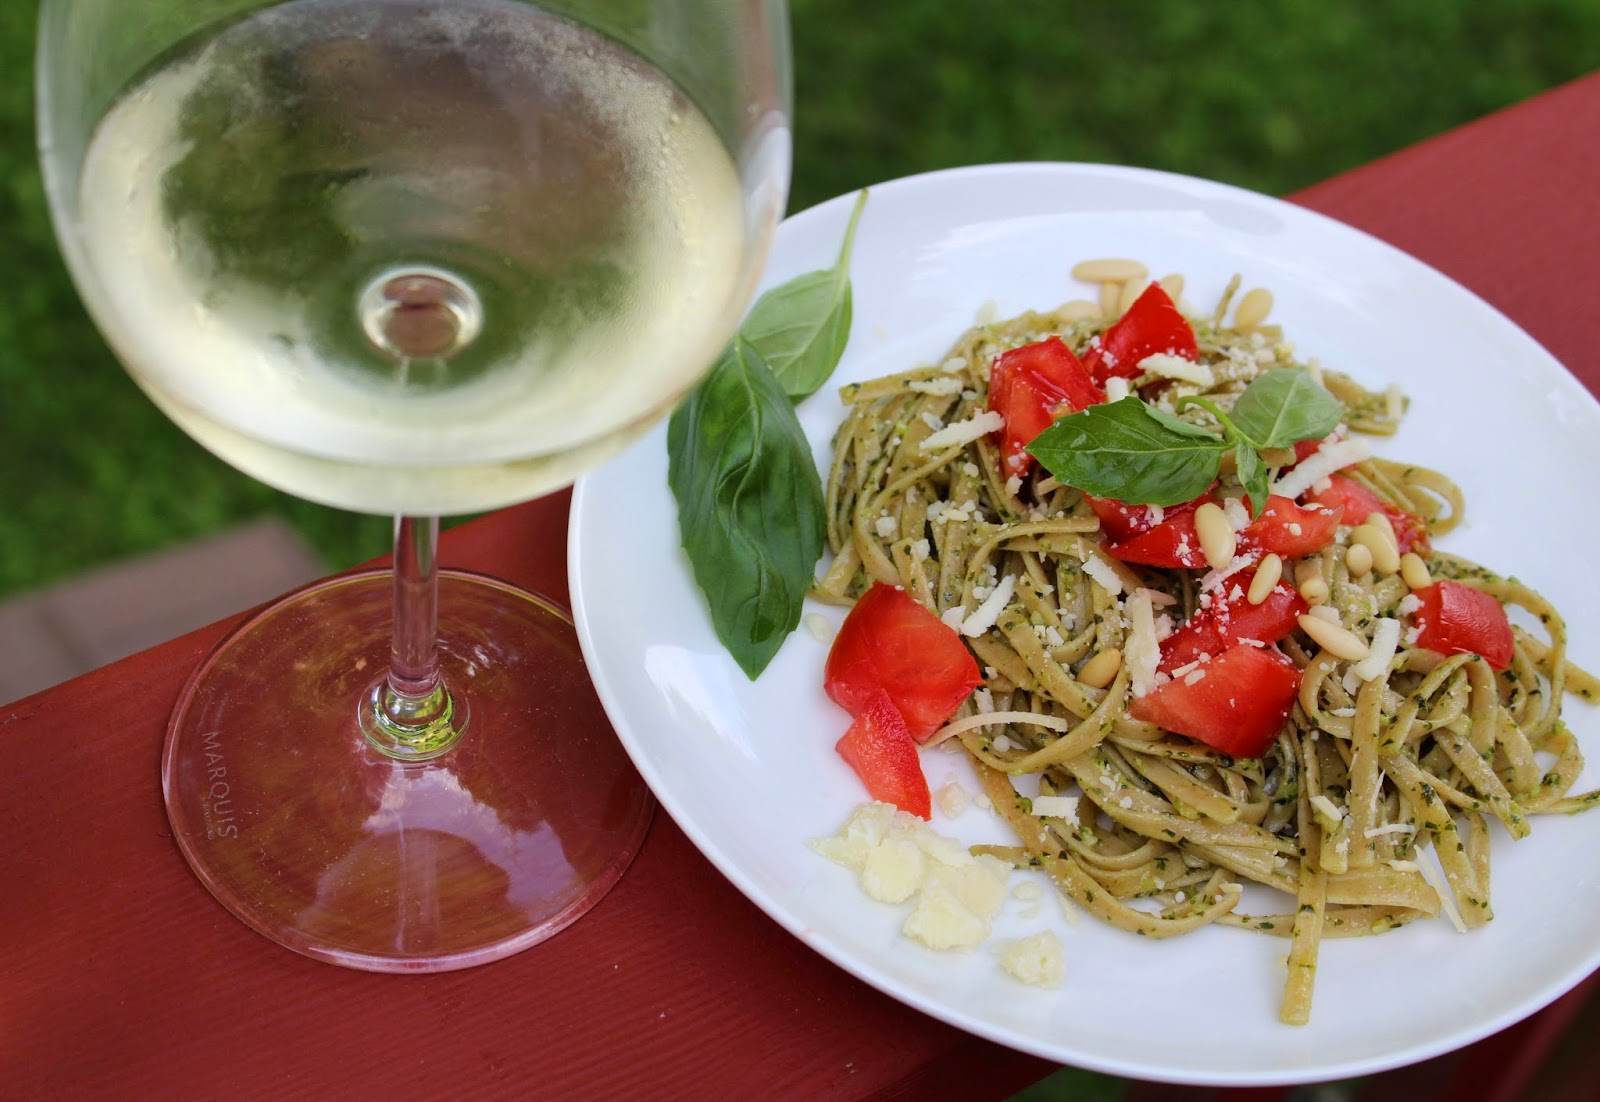 pesto and sauvignon blanc, classic wine pairing